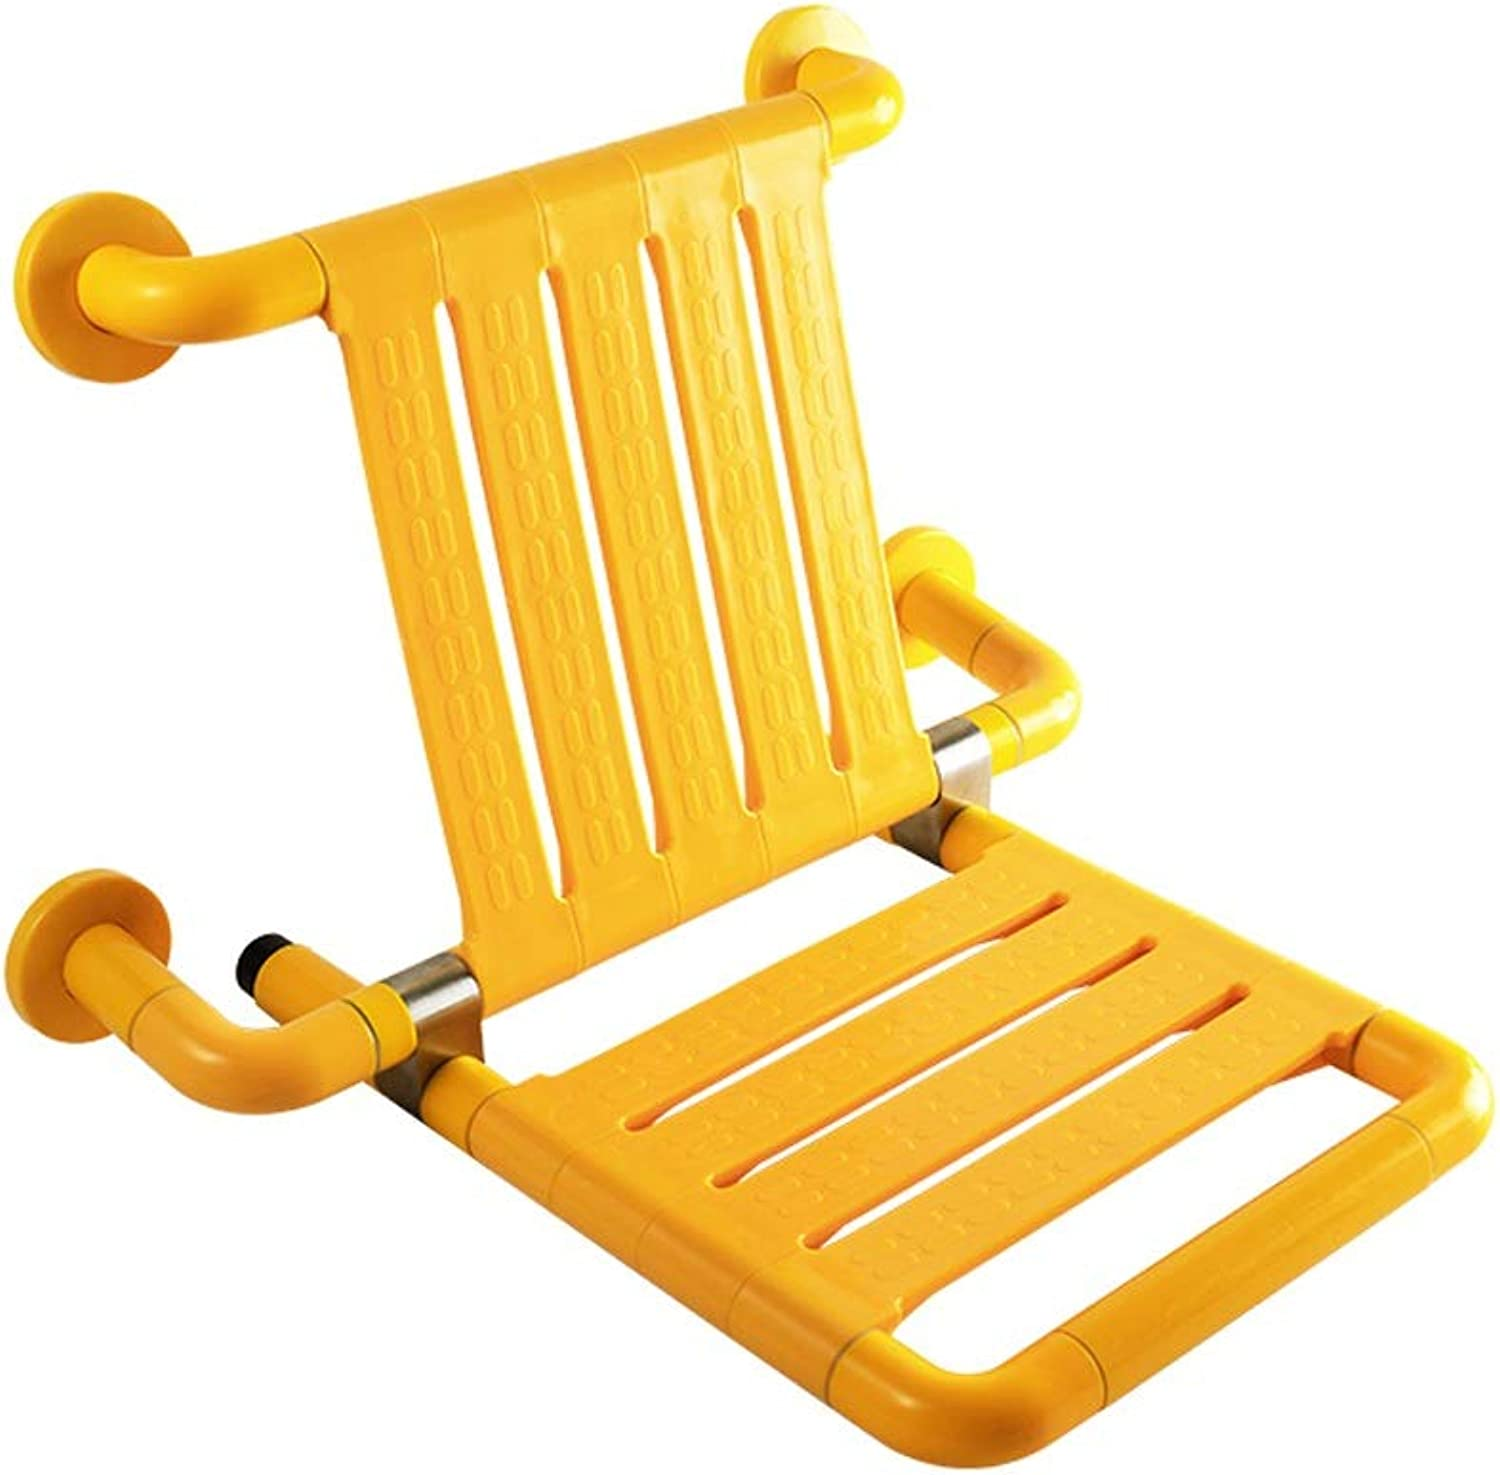 KTYXDE Wall-Mounted Seat Shower Room Door Wear shoes Maternity Room Dressing Room Bathroom Folding Stool Bathroom Chairs (color   Yellow, Size   500mm460mm)